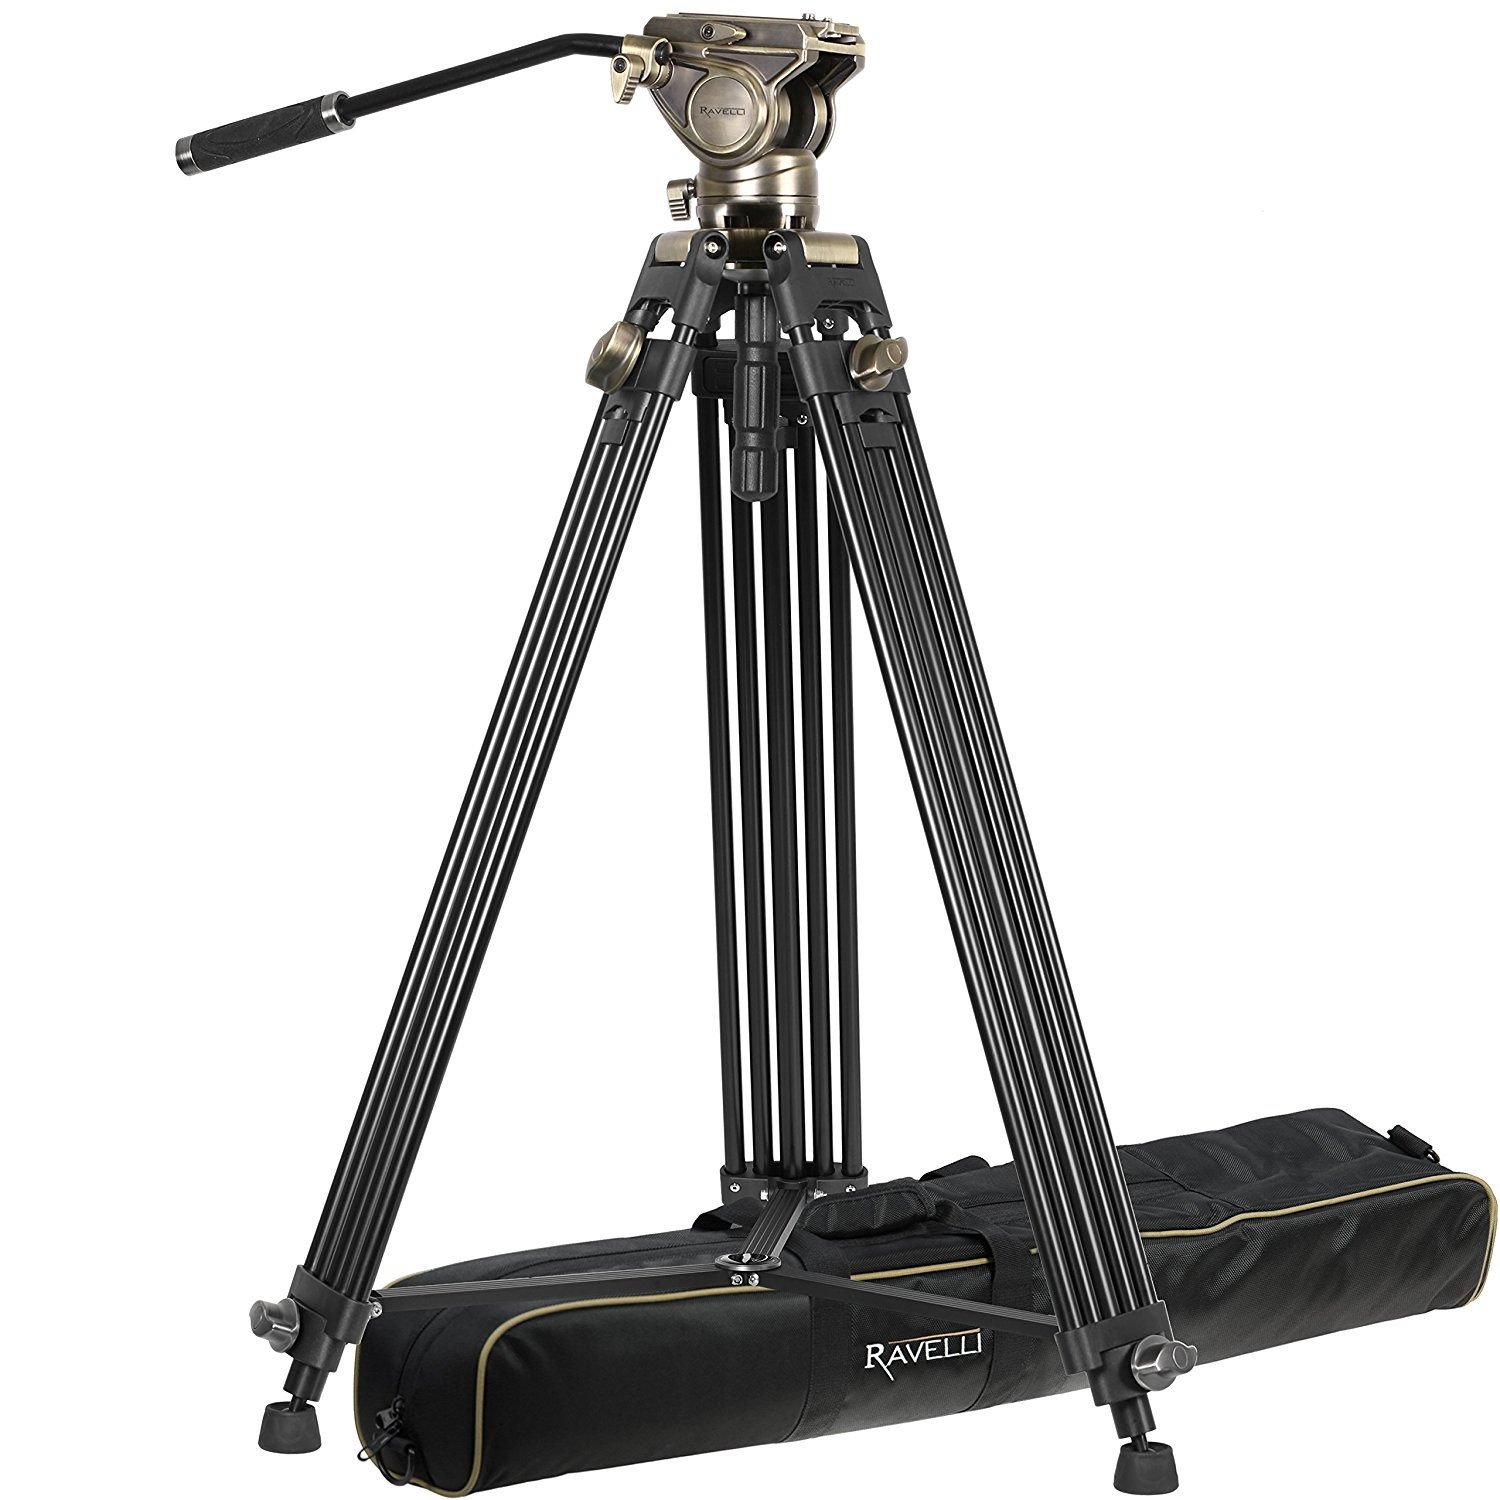 Cheap Ravelli Tripod Find Ravelli Tripod Deals On Line At Alibabacom